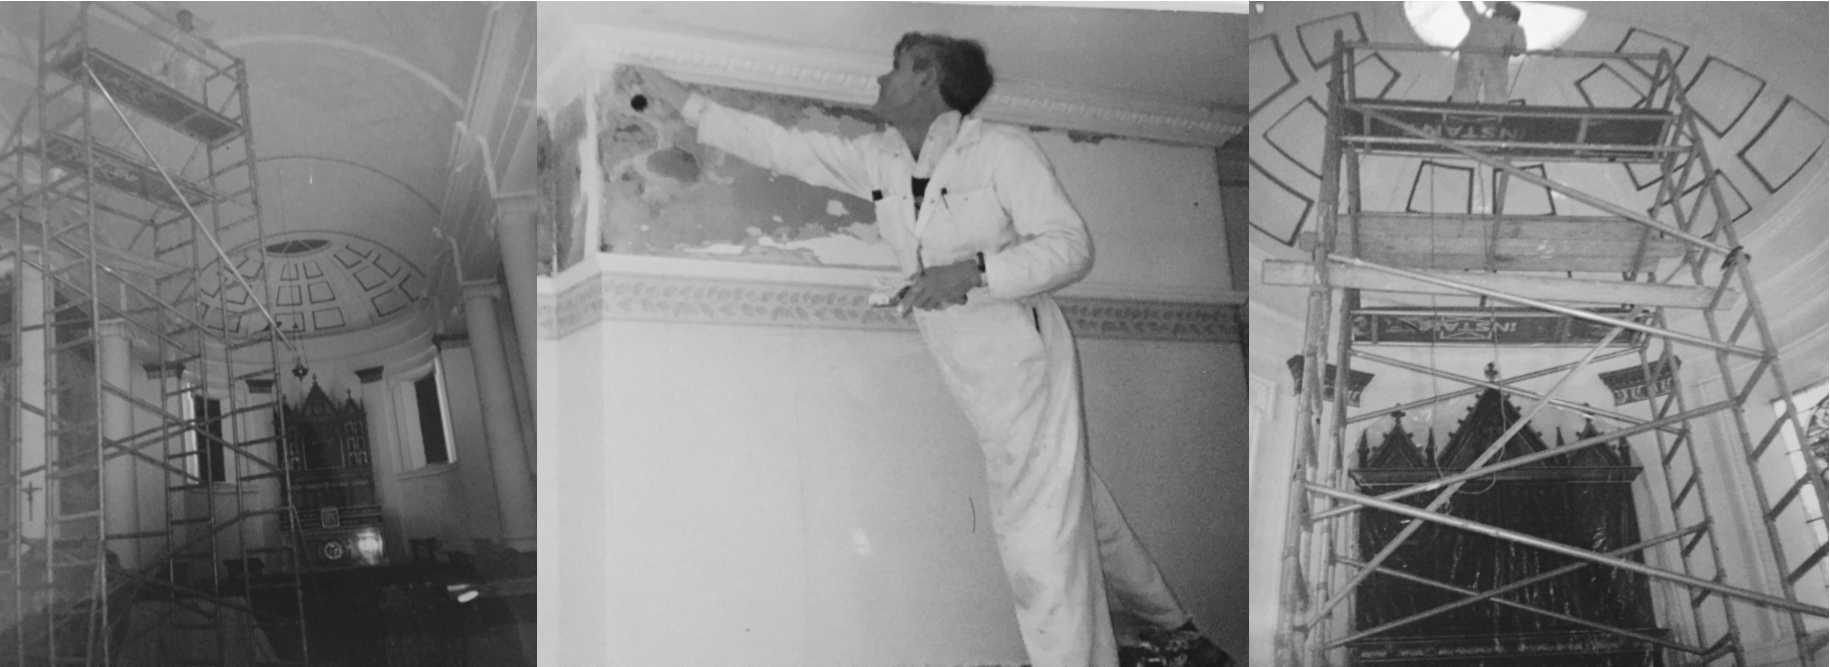 Pictures of John Baker decorator of Baker Southern Ltd including the decorating Holy Trinity Church Gosport of